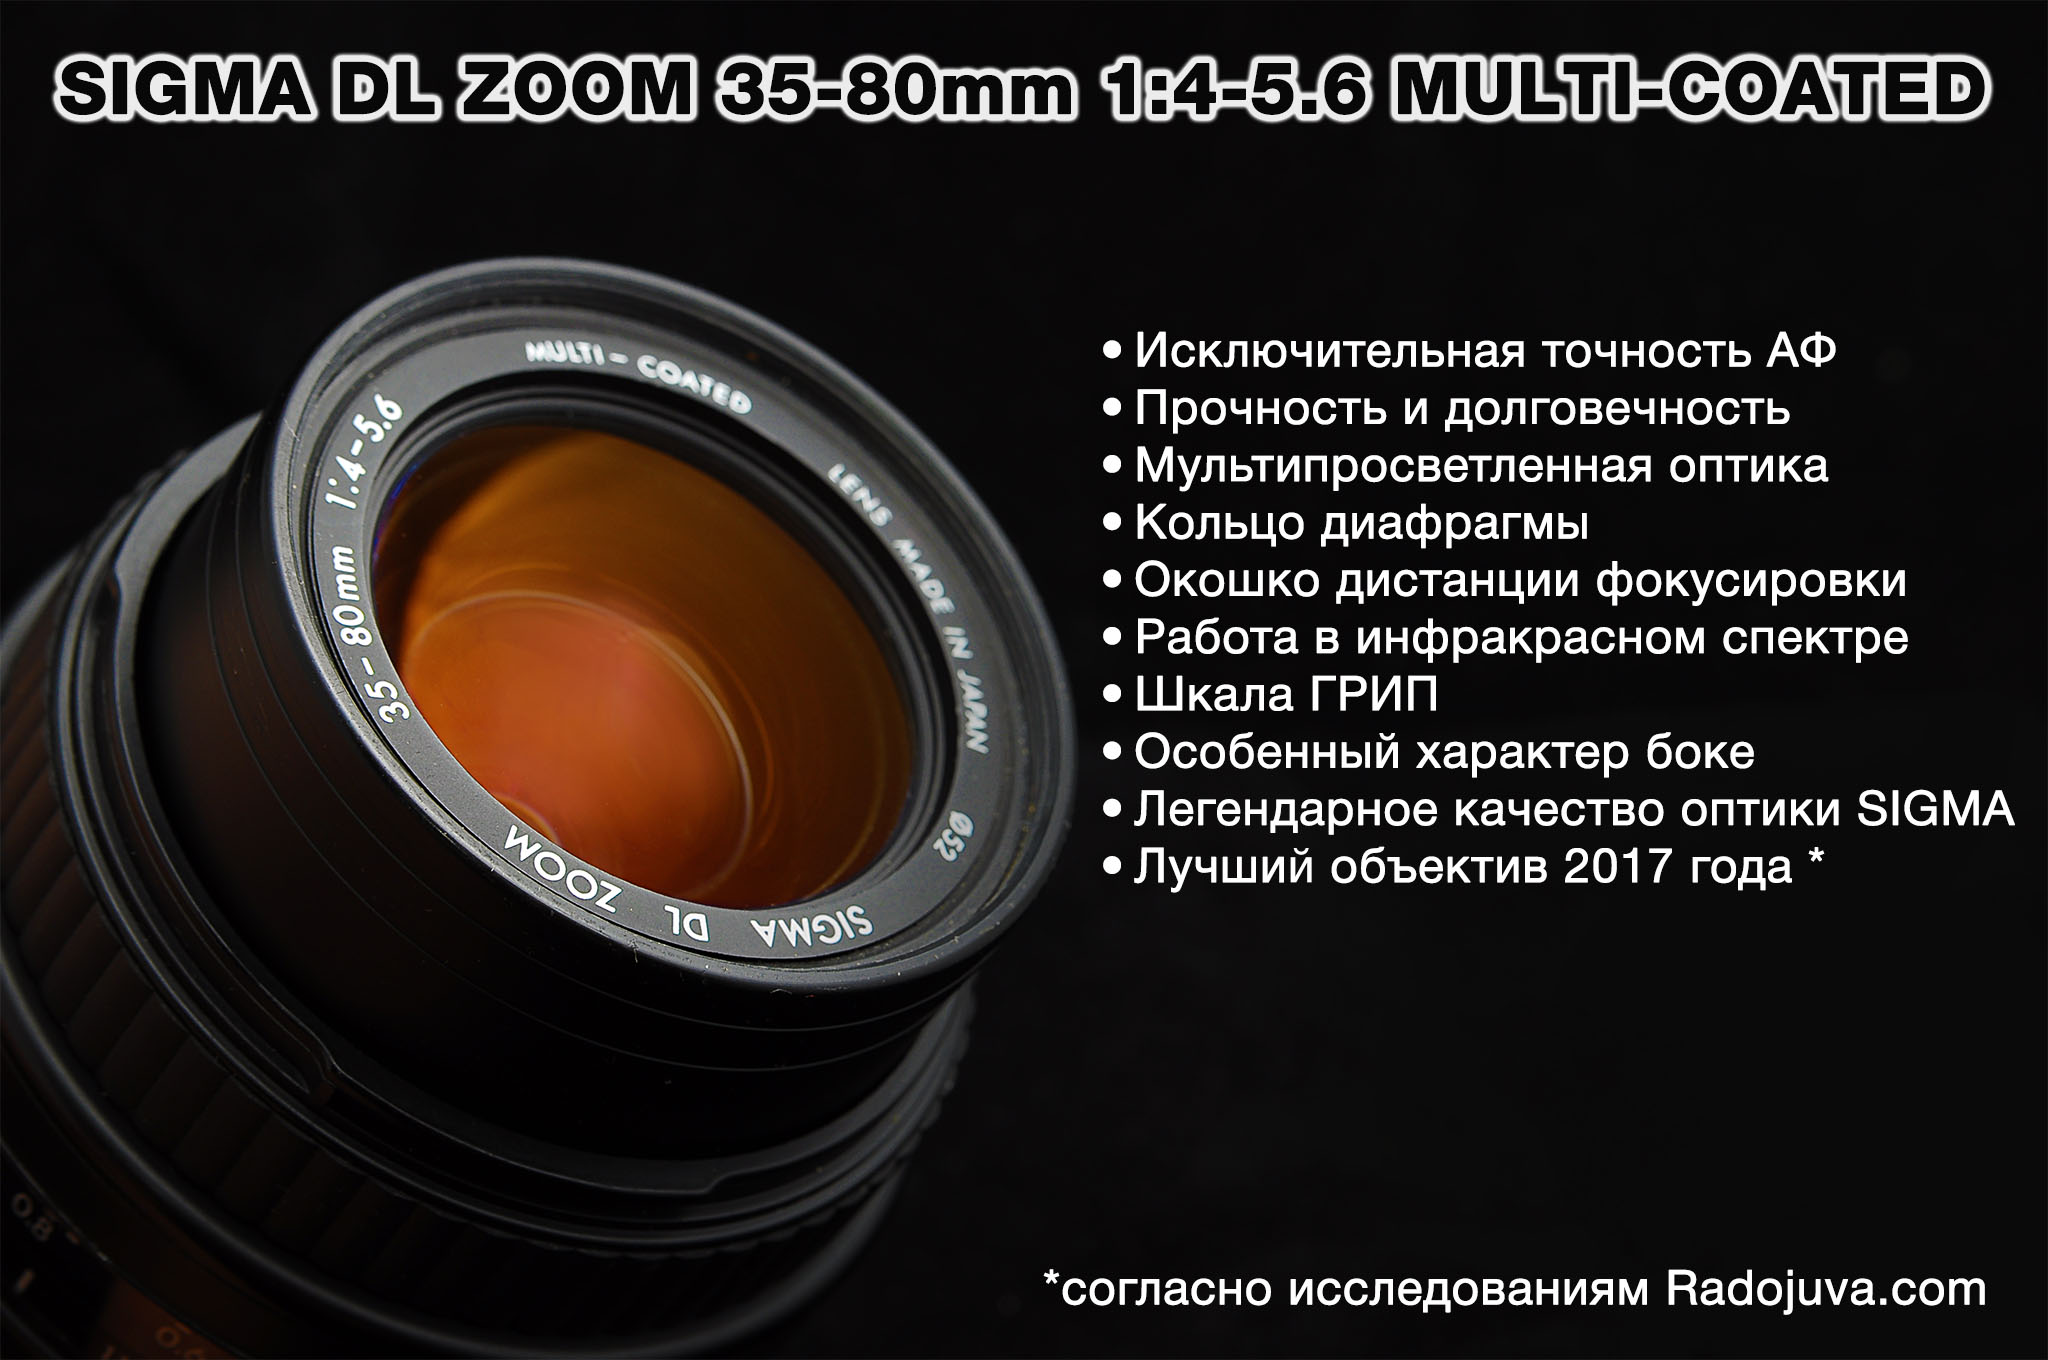 SIGMA DL ZOOM 35-80mm 1:4-5.6 MULTI-COATED